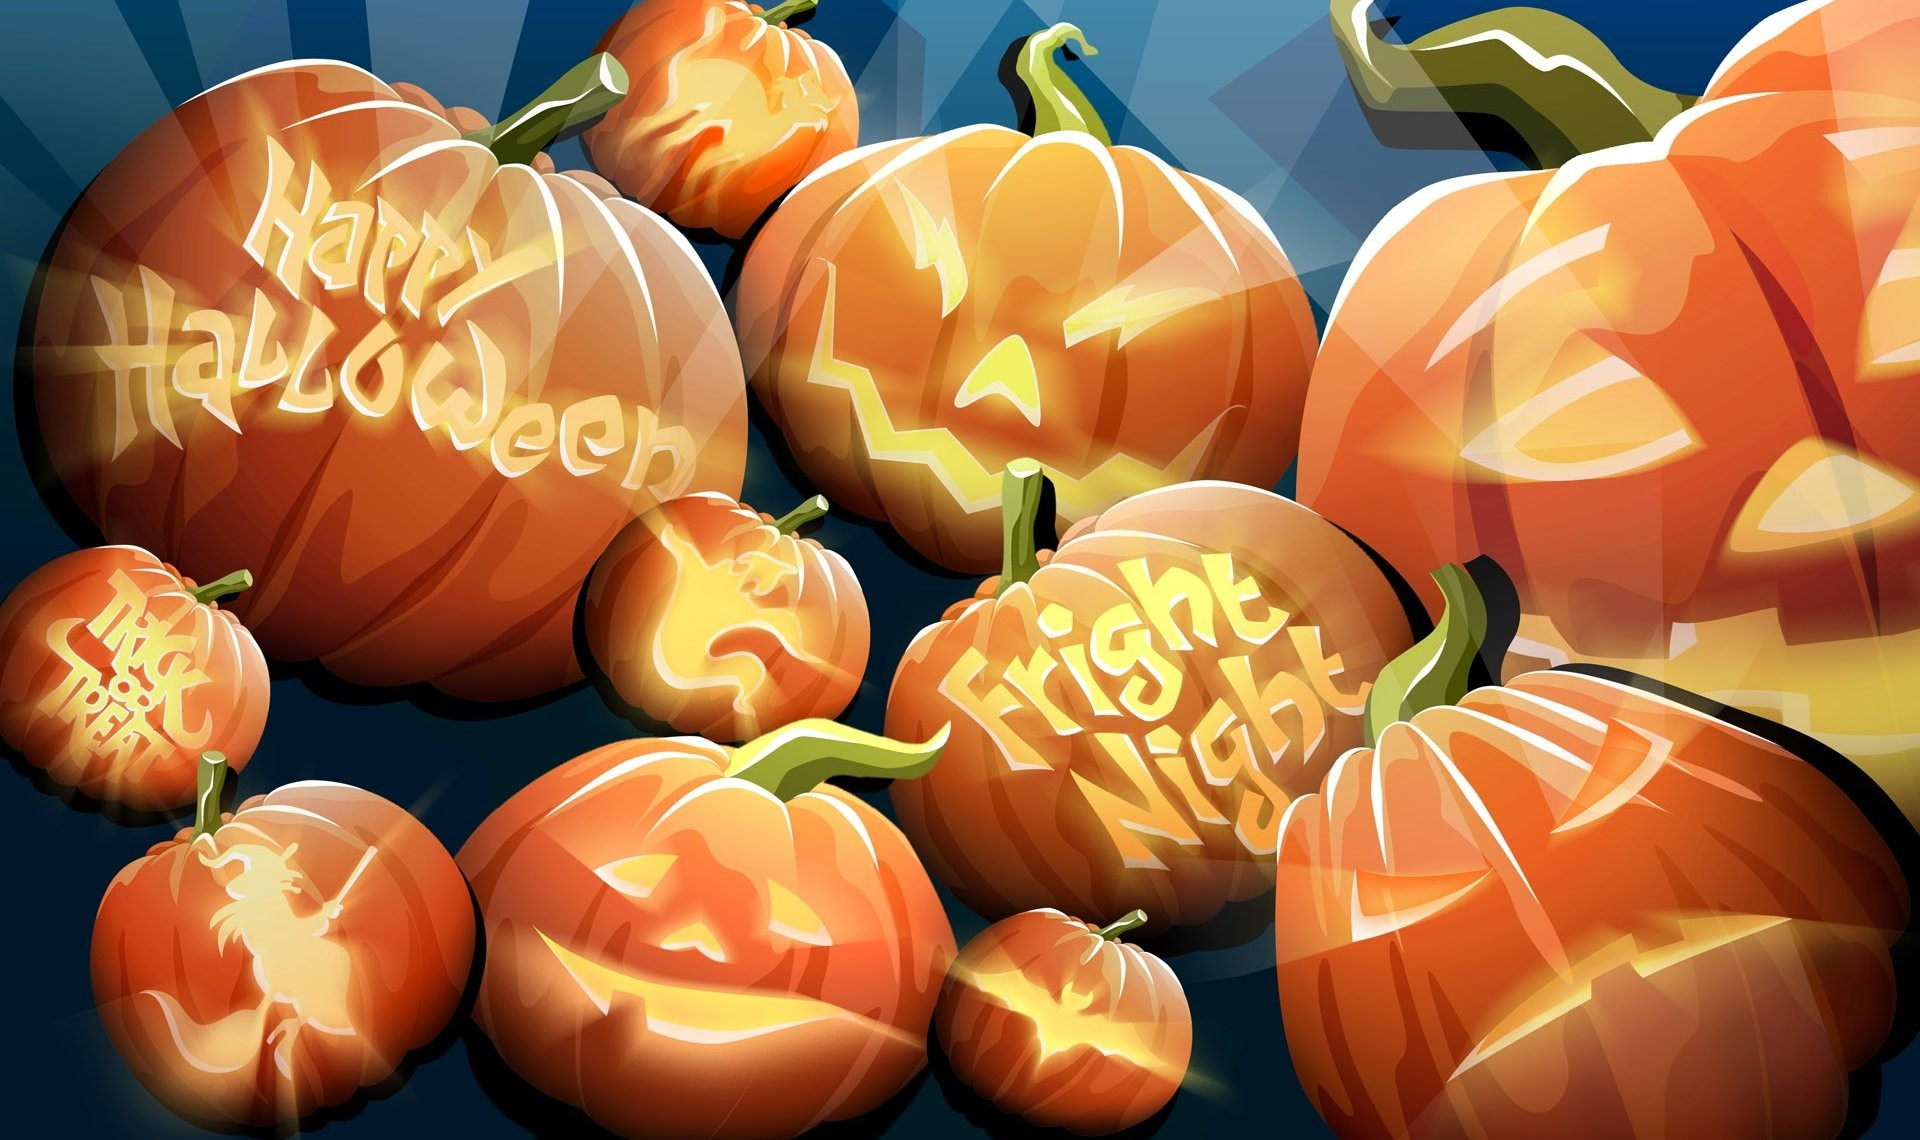 PreviousNext. Previous Image Next Image. halloween wallpaper with pumpkin  …